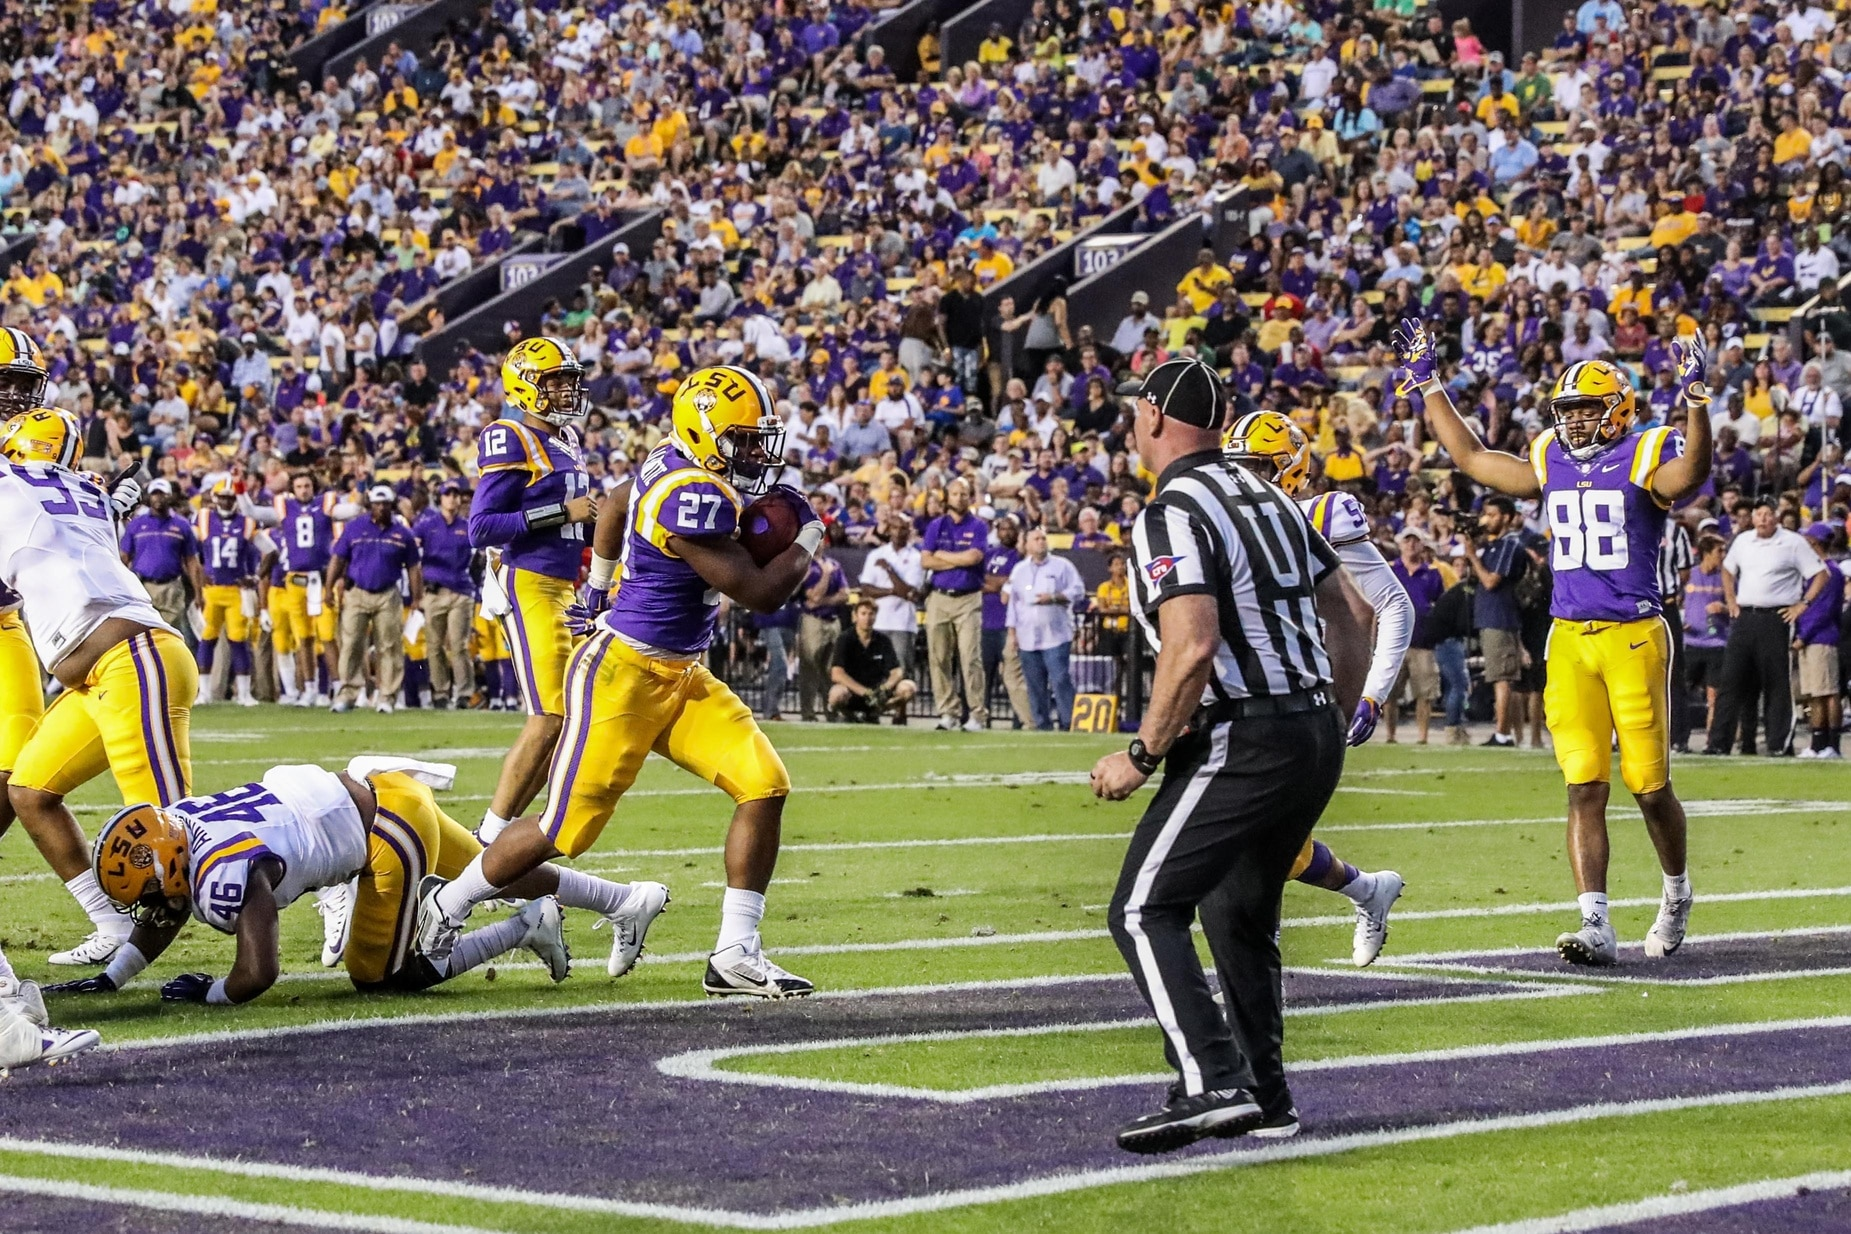 LSU running back Lanard Fournette reportedly arrested using a fake ID to gamble.